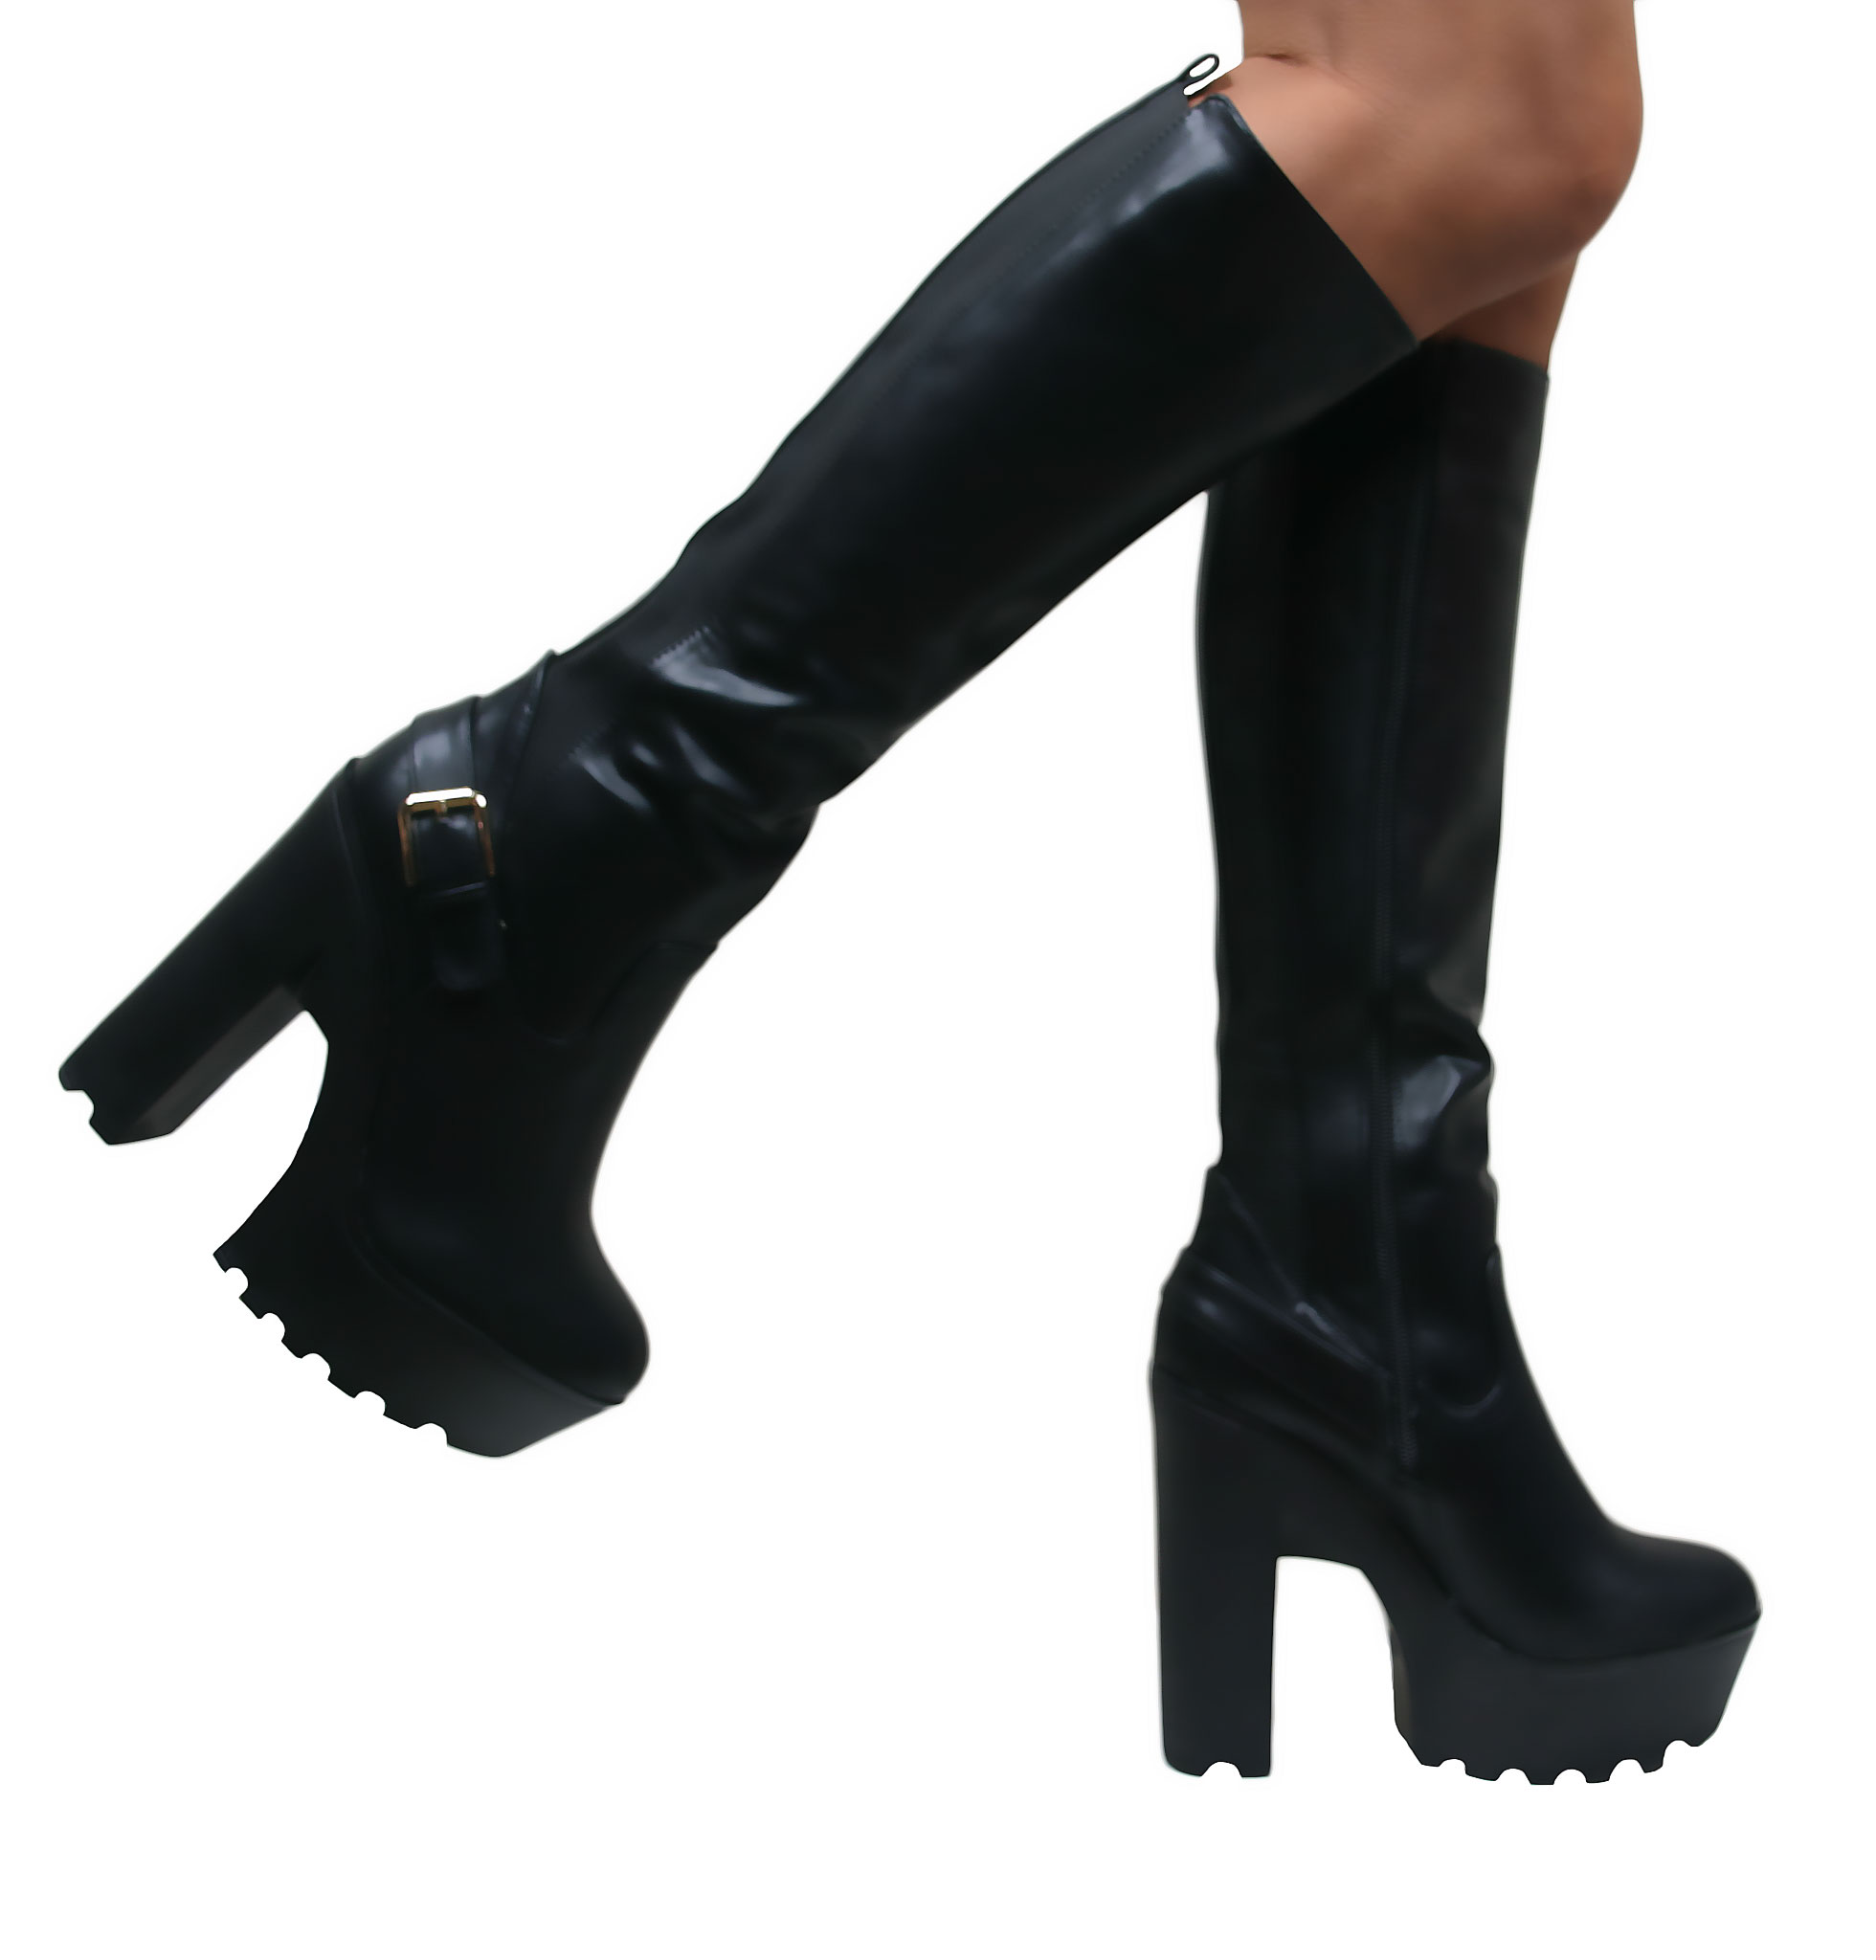 High heel boots plaform fetish gallery lovely, great